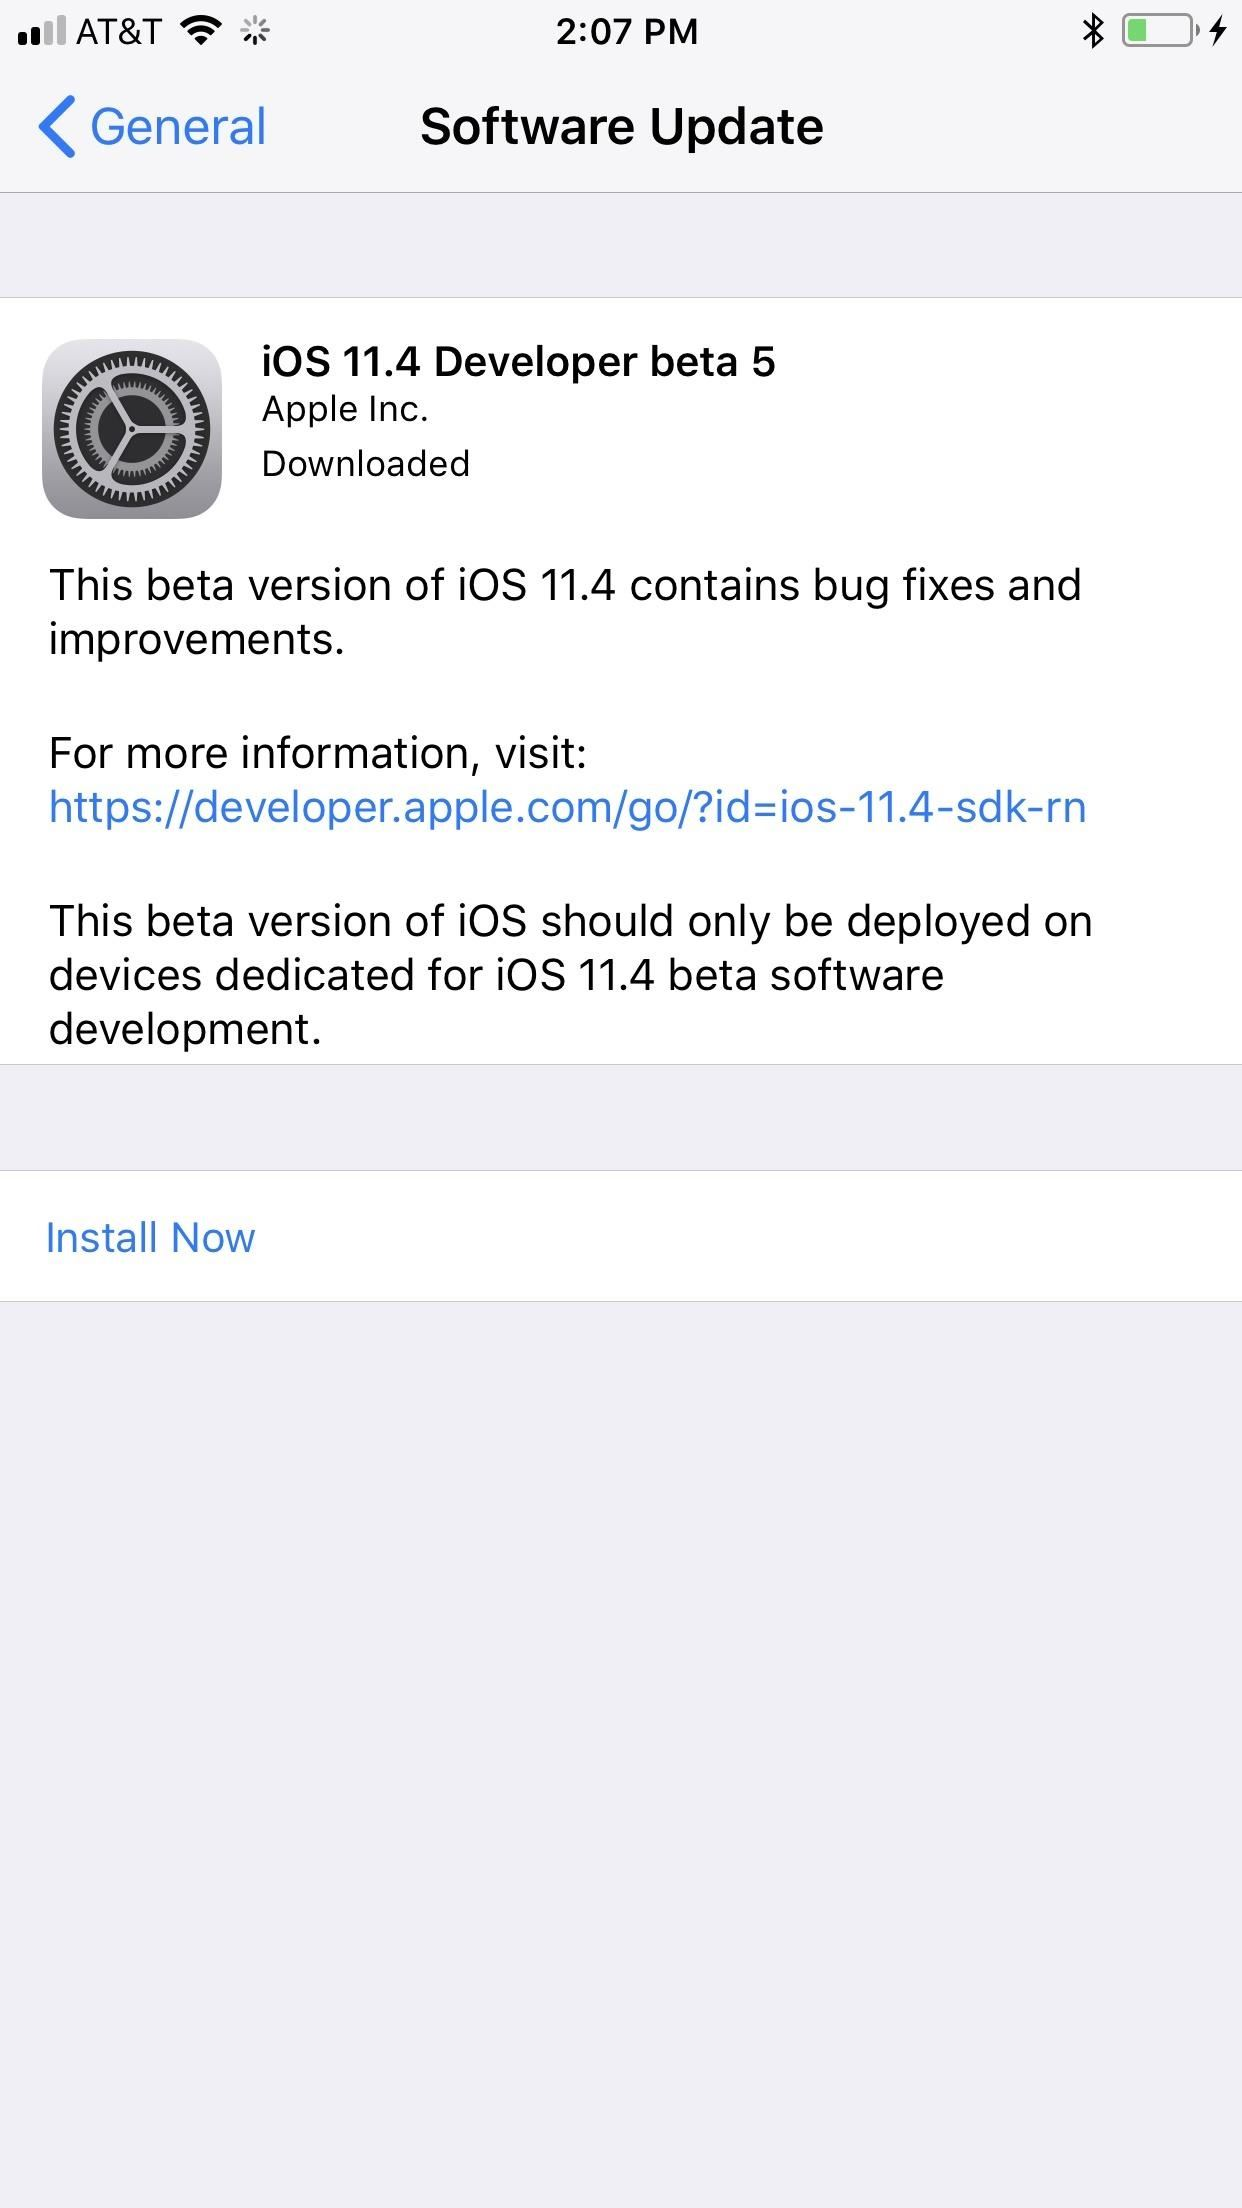 iOS 11.4 Beta 5 Released for iPhones with Under-the-Hood Improvements